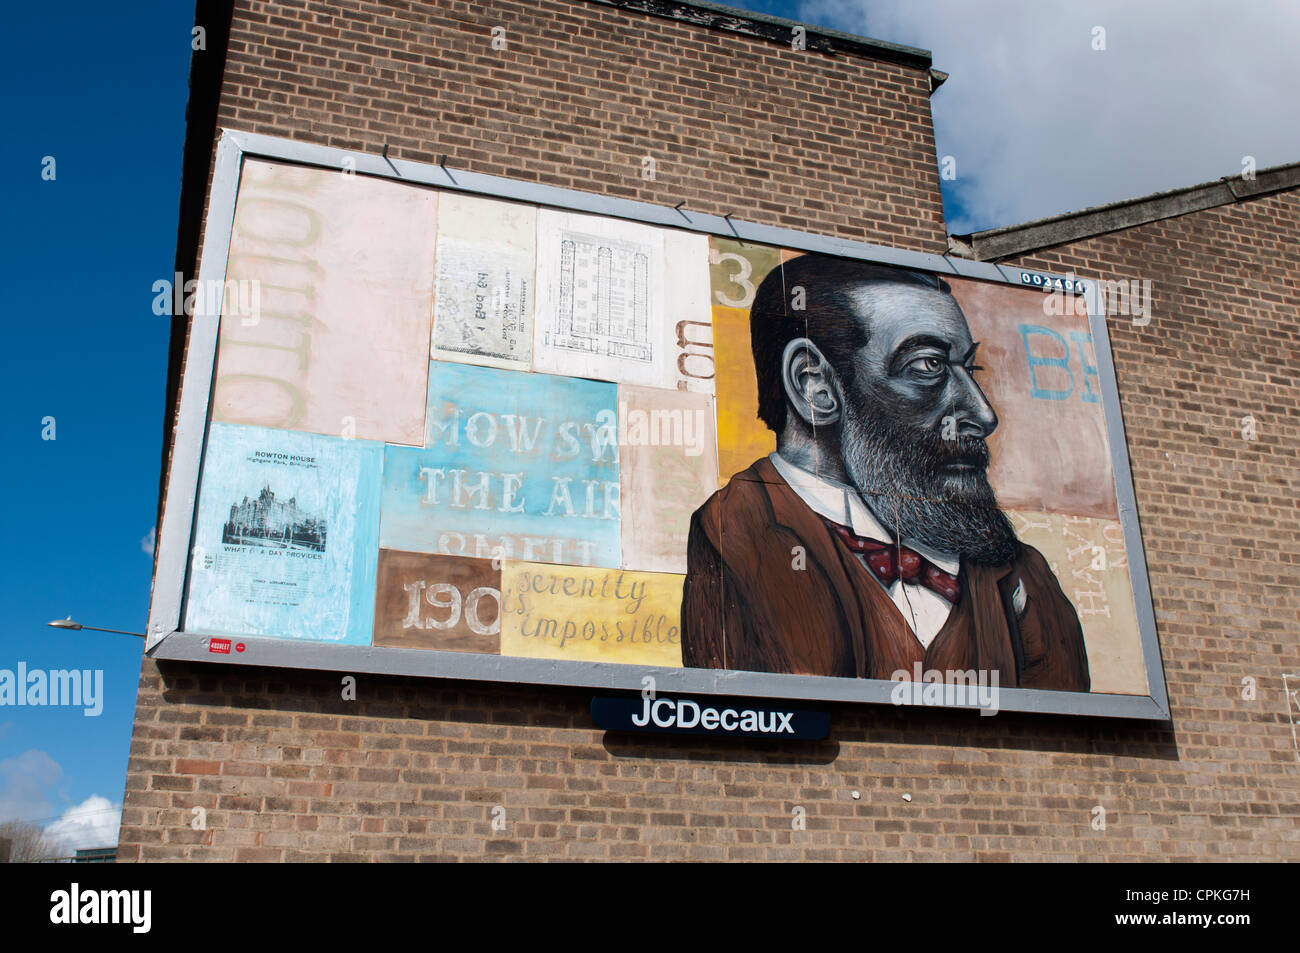 48 Sheet Billboard Project, Birmingham, UK - Stock Image